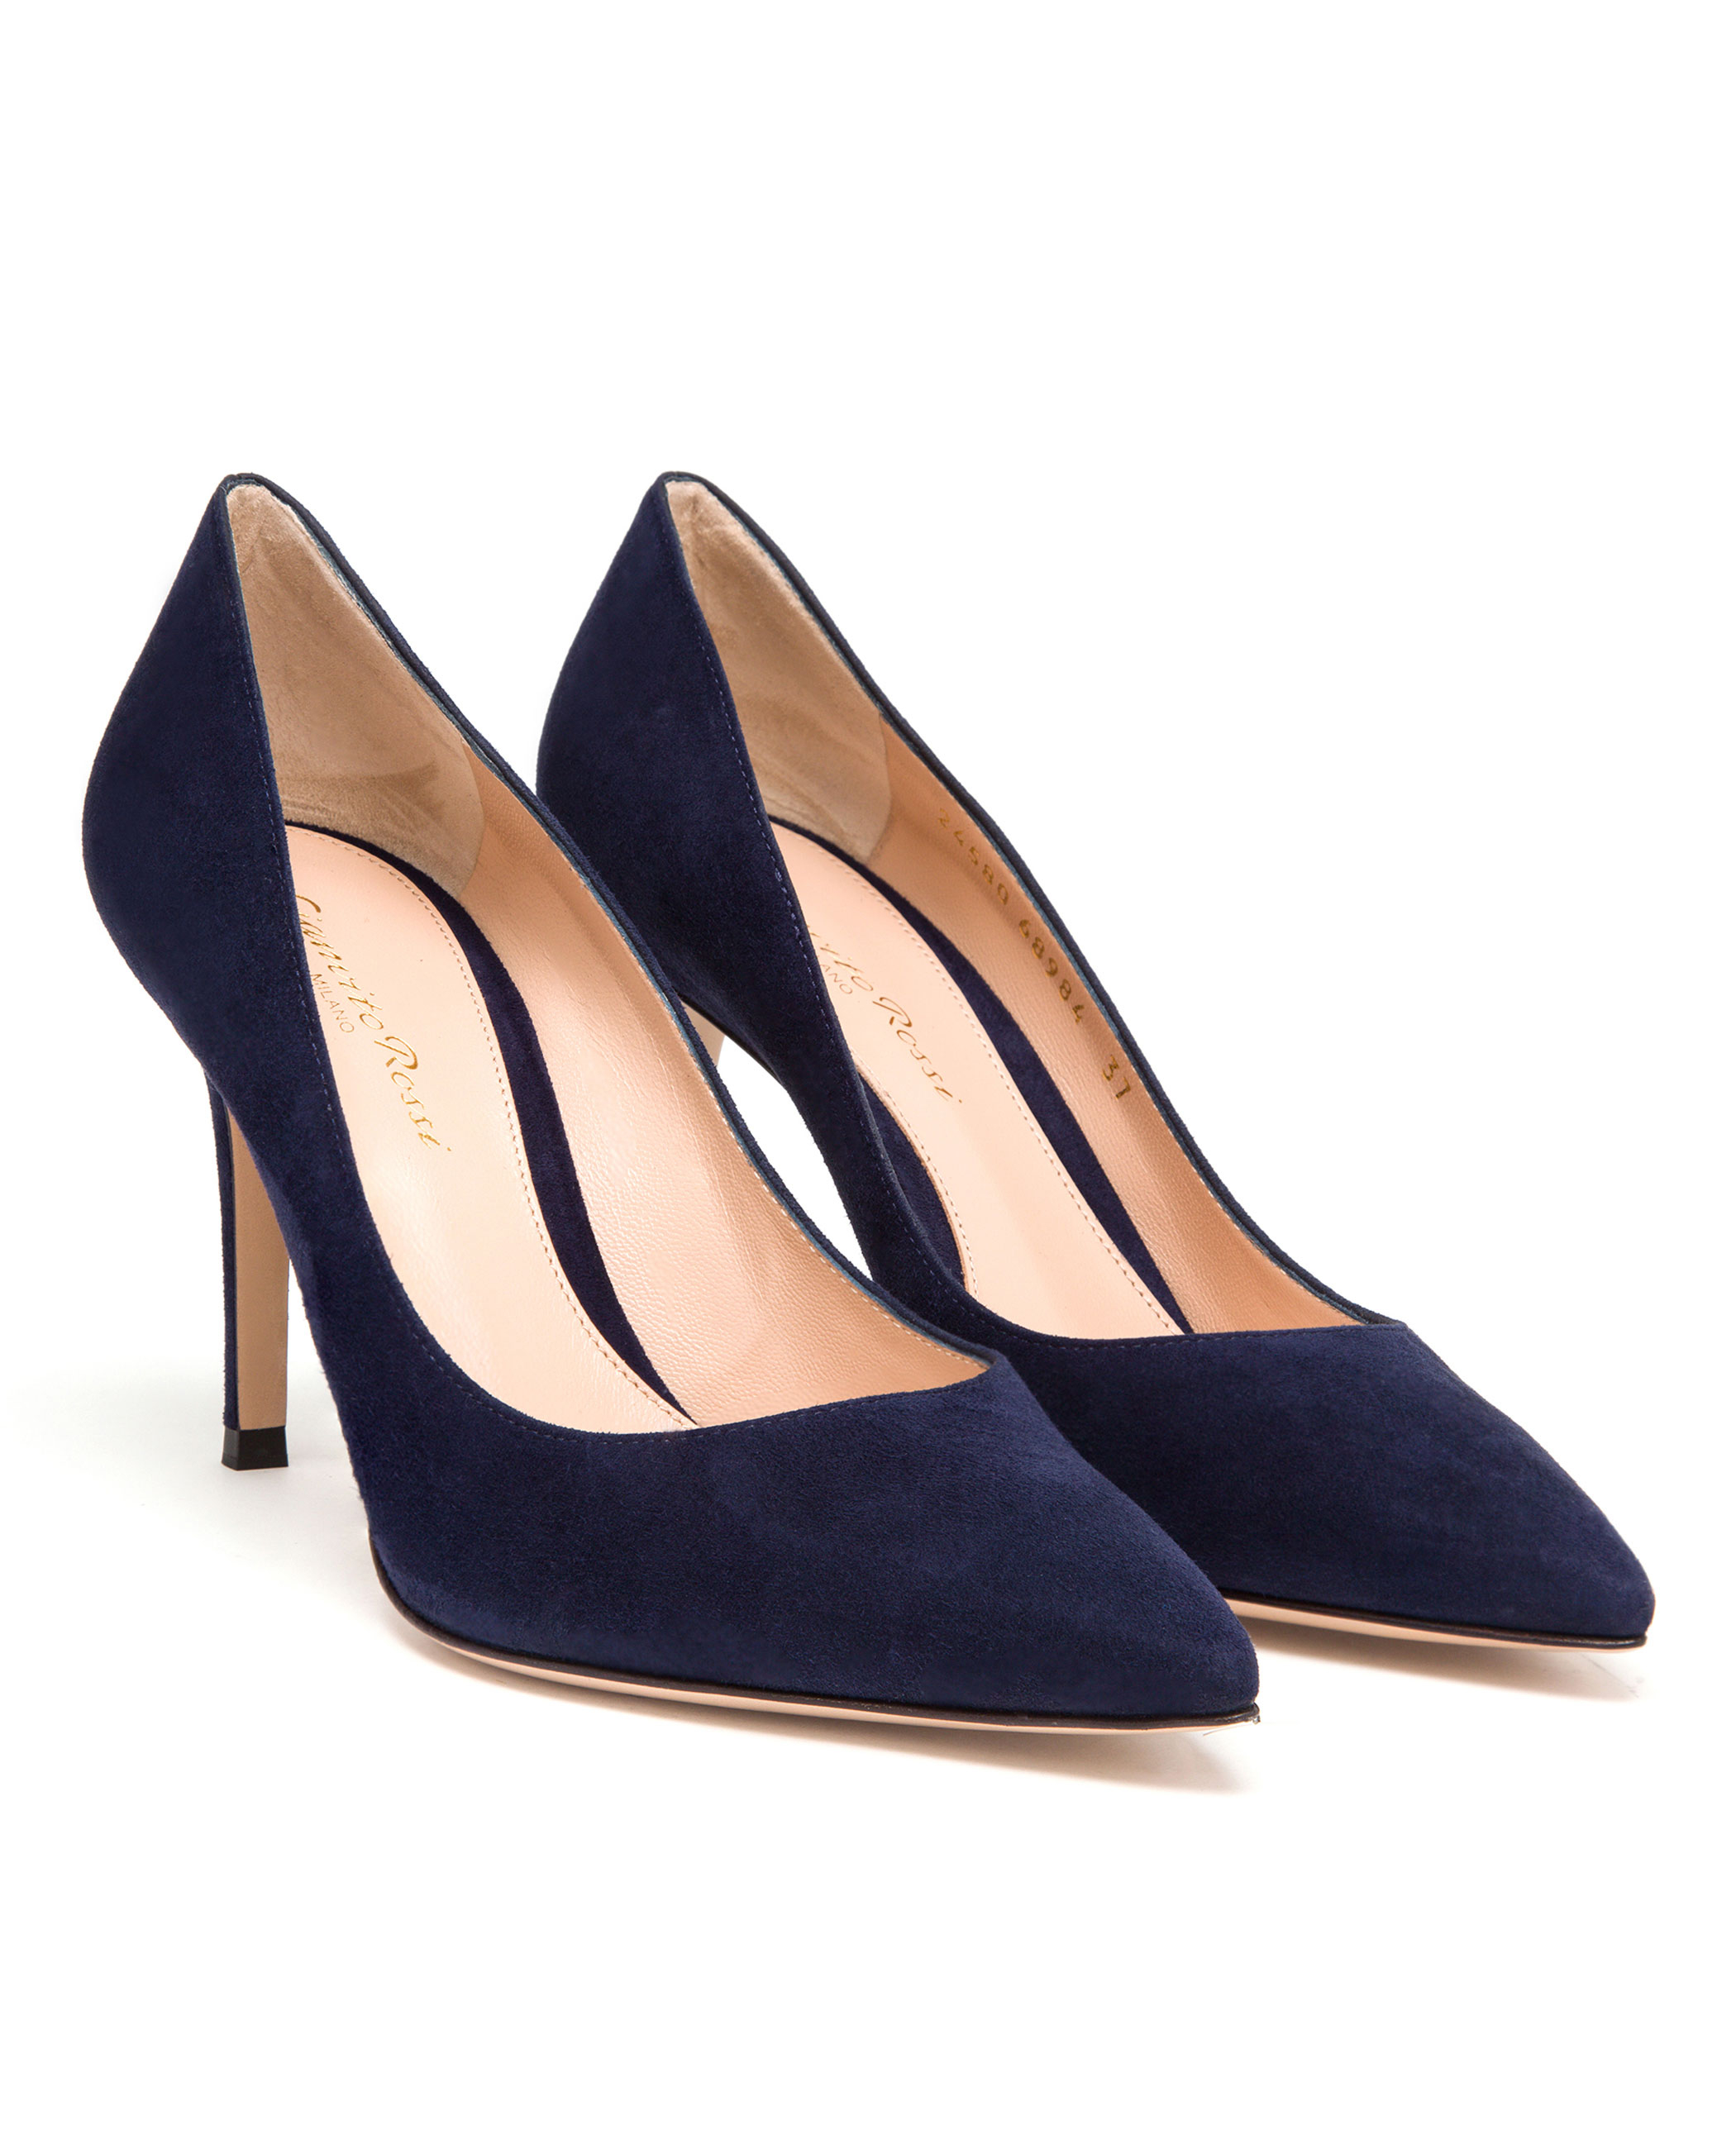 These women's navy blue captoe pumps are crafted in kid suede and accented with a calfskin toecap. Fully leather lined with natural sock. 3 inch oraplanrans.tk: $